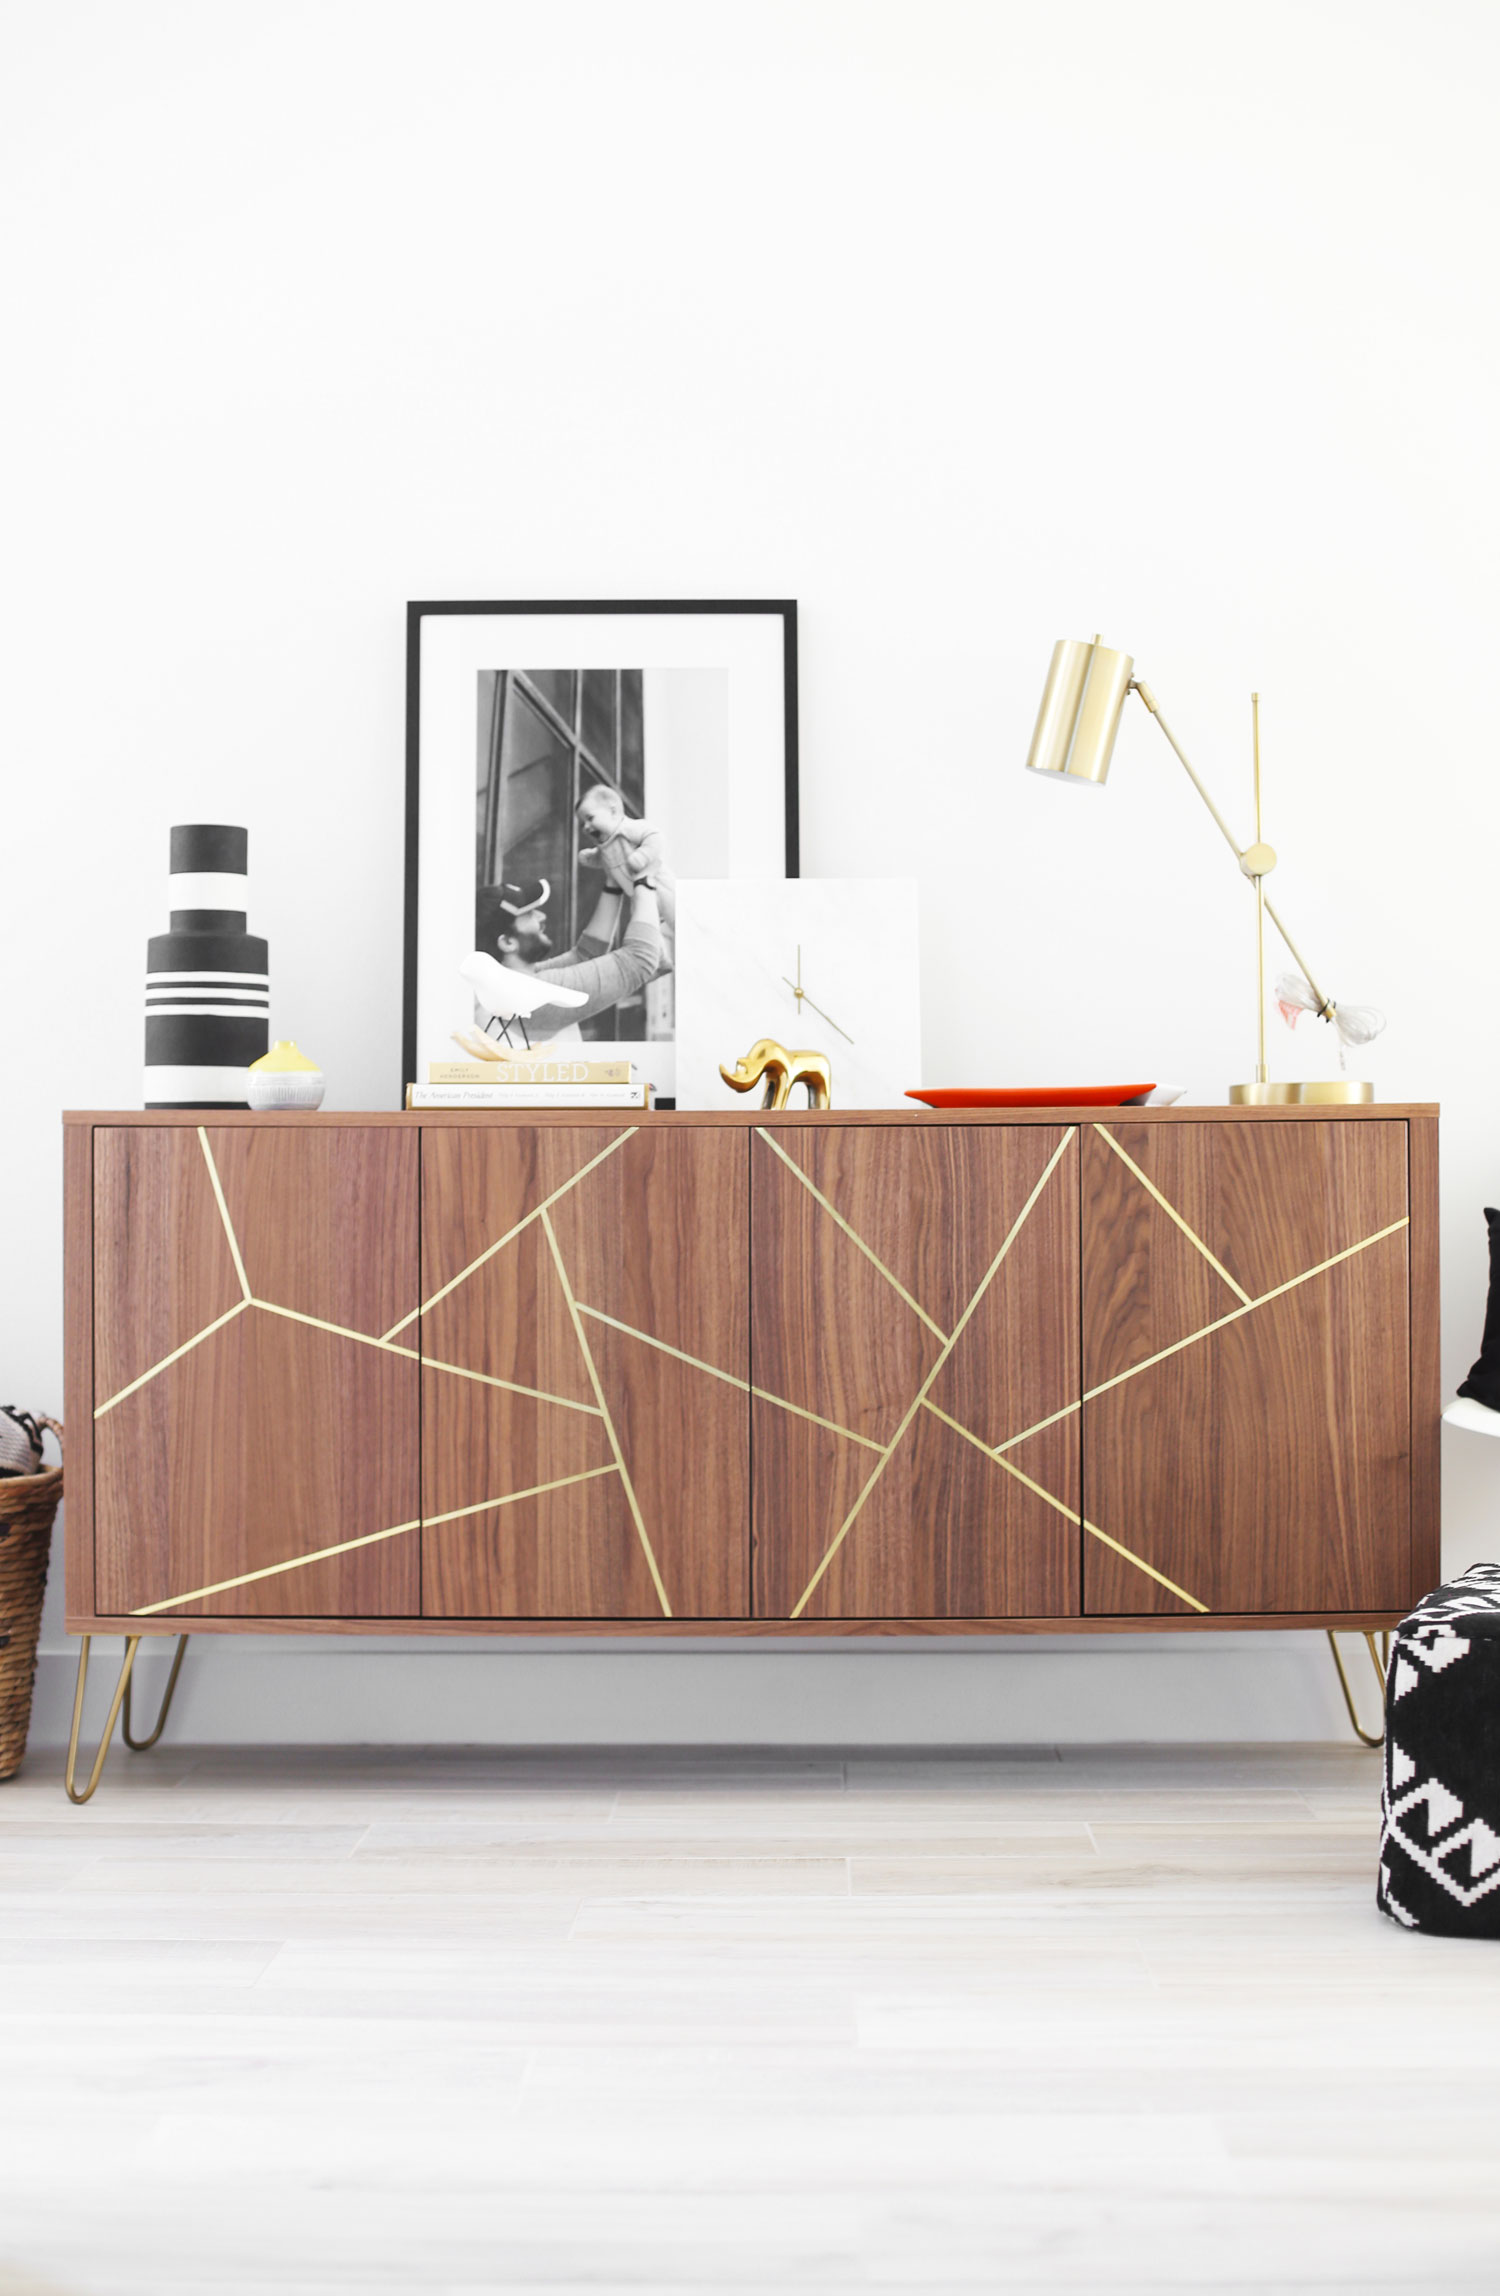 It took only some tape and paint to make this IKEA cabinet into a mid century modern design dream